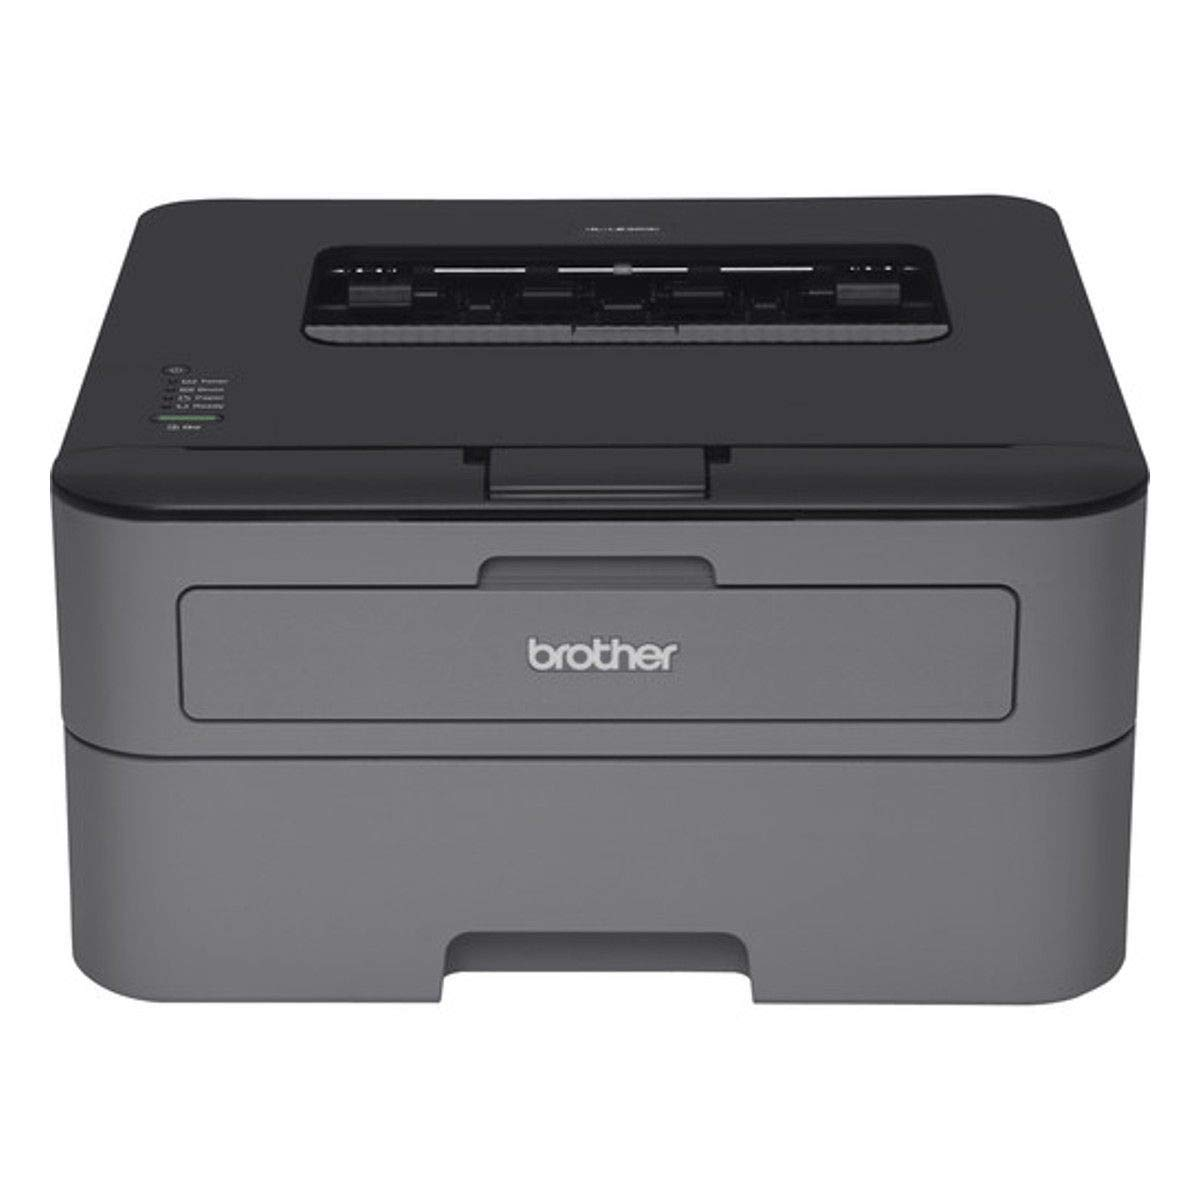 best printer under 10000 for home use